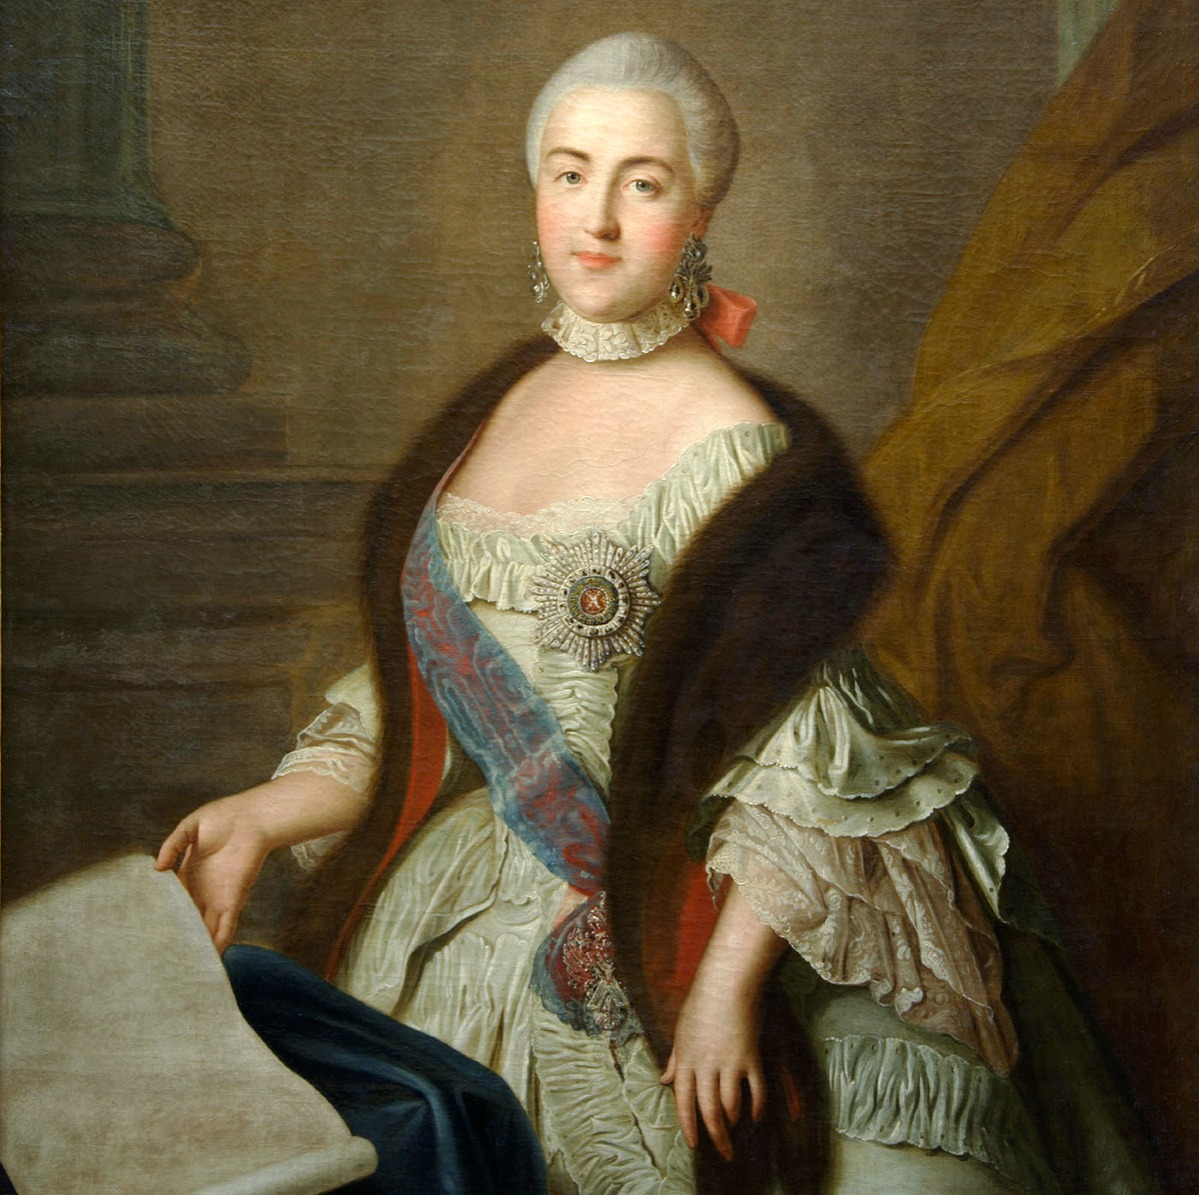 Catherine II as Grand Duchess Ekaterina Alekseyevna', 1762. Argunov, Ivan Petrovich (1729-1802). Found in the collection of the State Museum of Ceramics and Country estate of 18th cen. Kuskovo, Moscow.